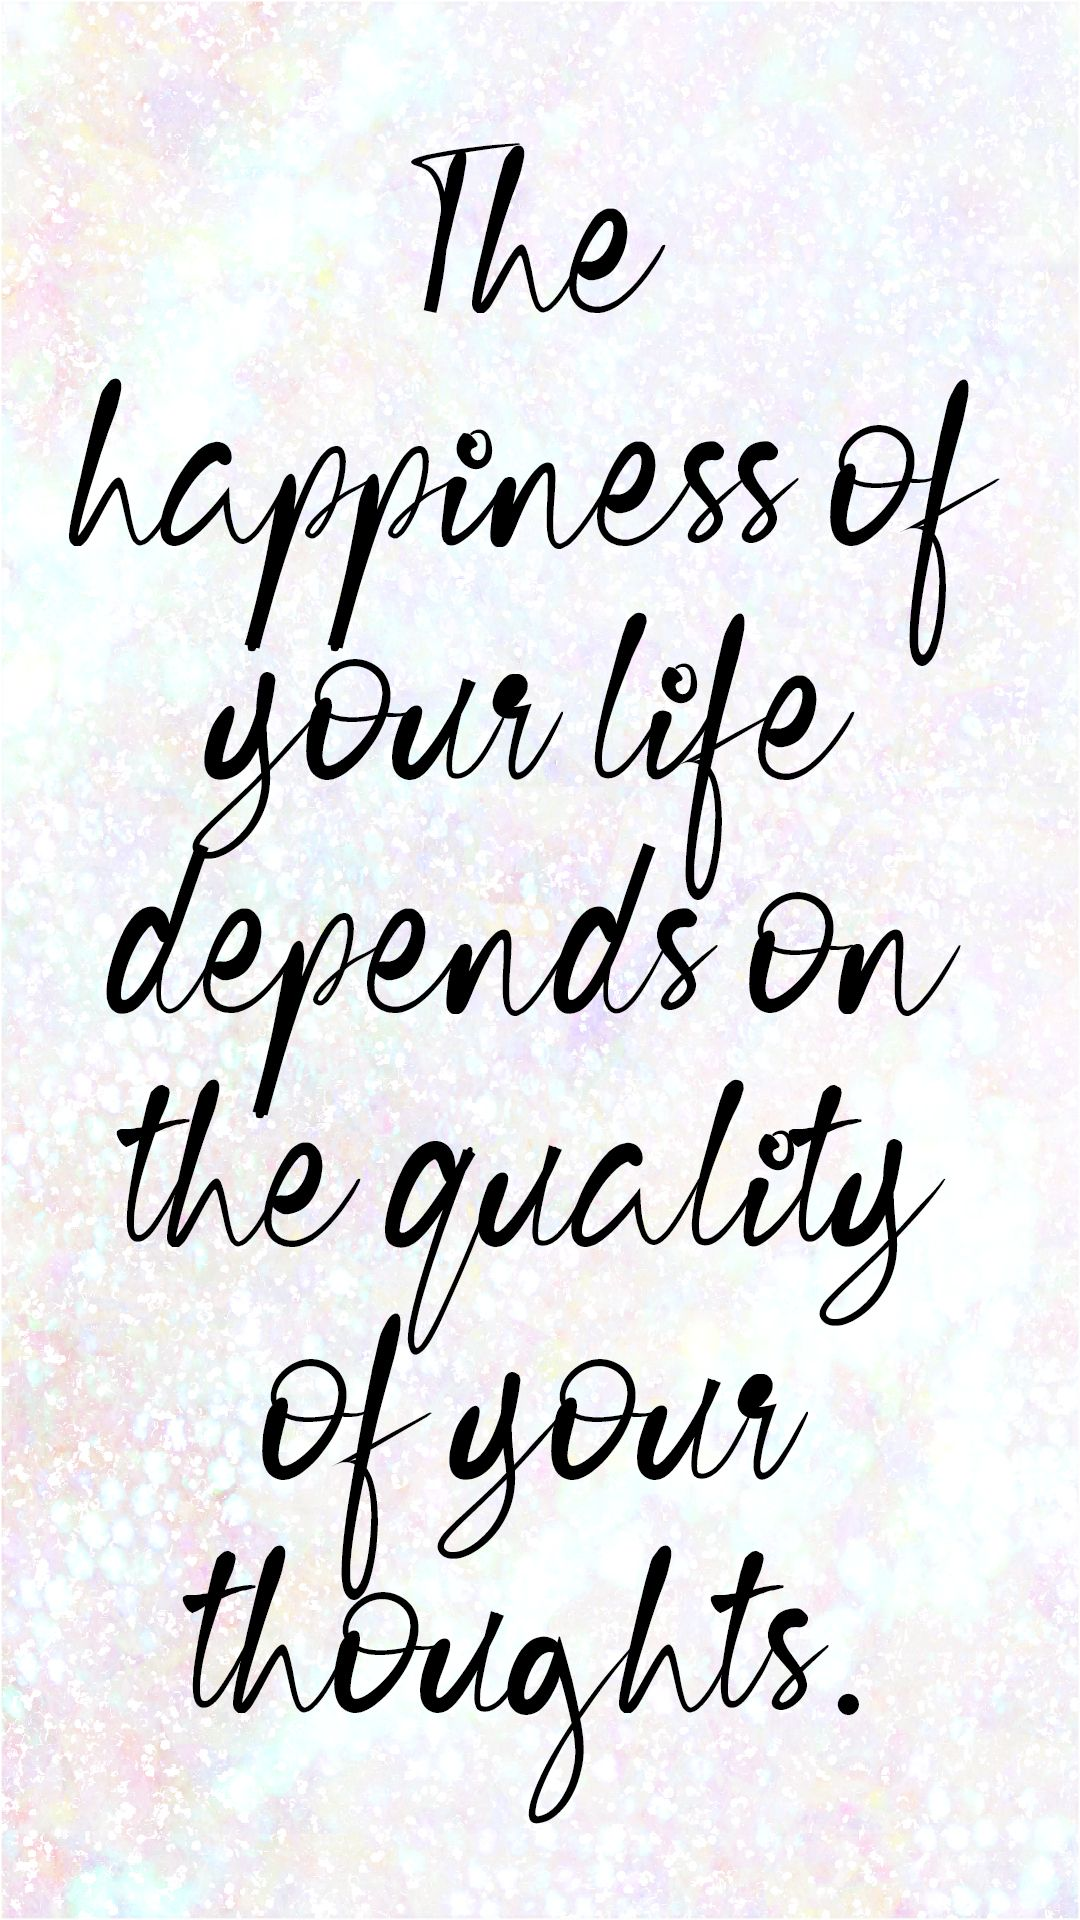 50 Free Phone Wallpapers Backgrounds To Download Life Quotes Positive Quotes Words